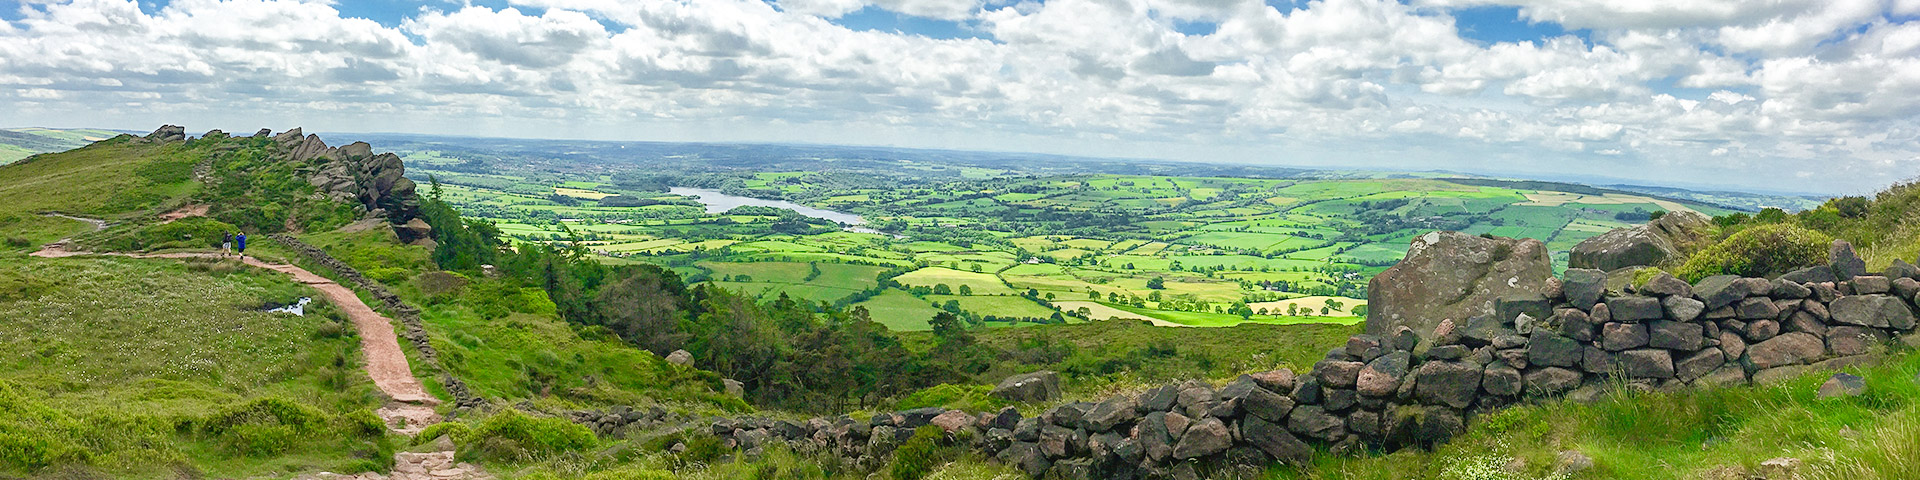 Panoramic views from the Roaches and Lud's Church hike in Peak District, England